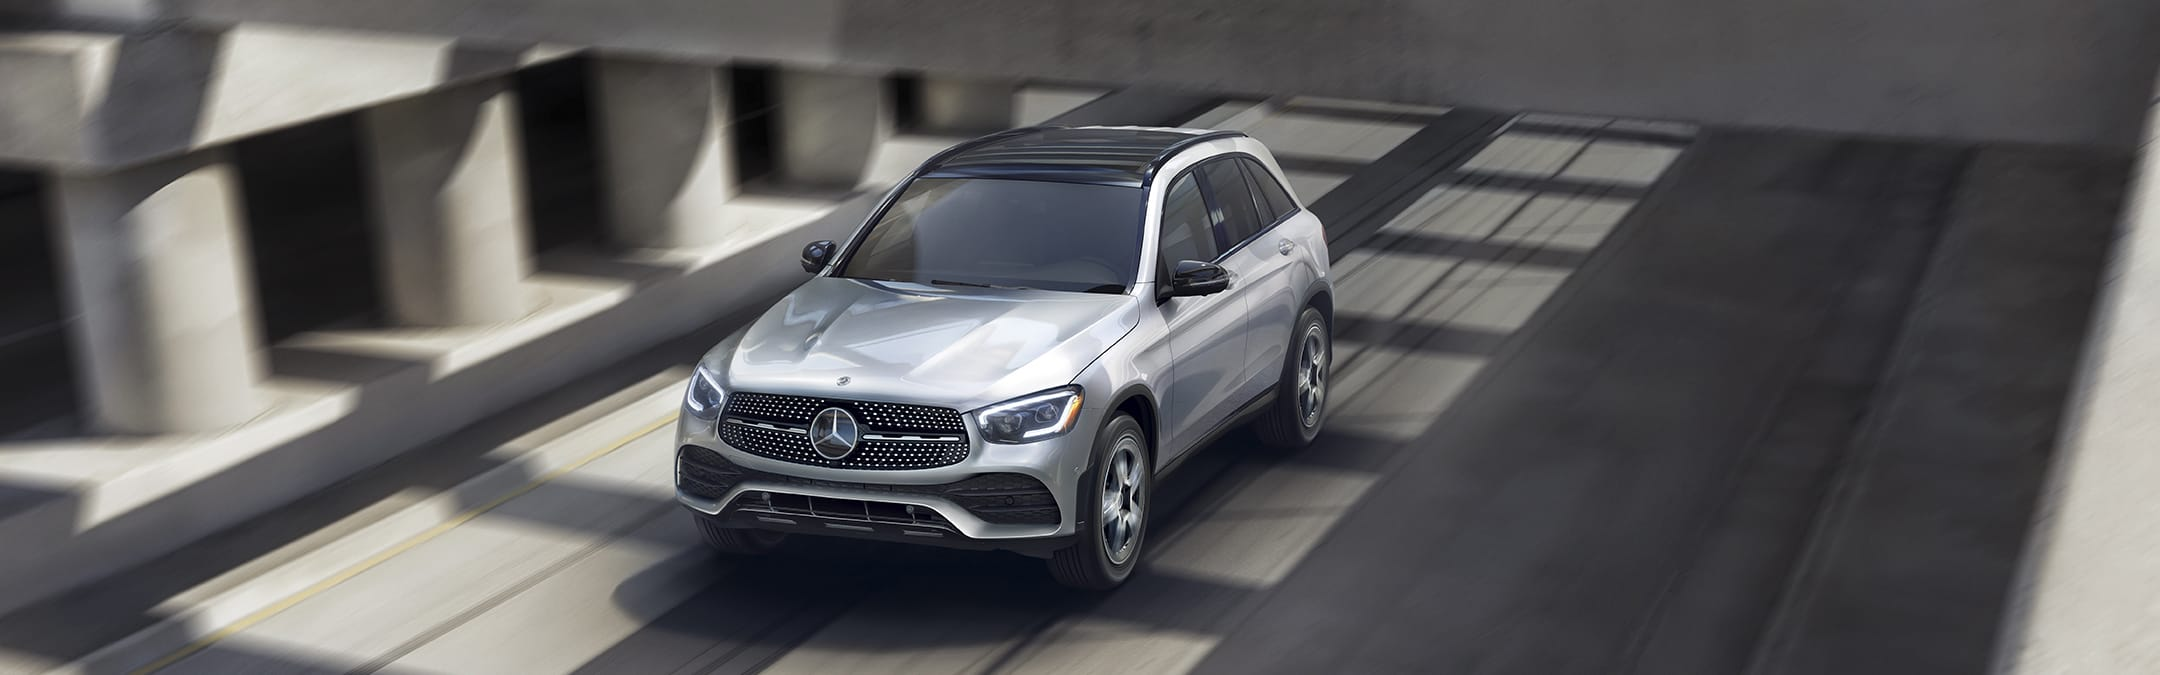 2020 GLC SUV Performance